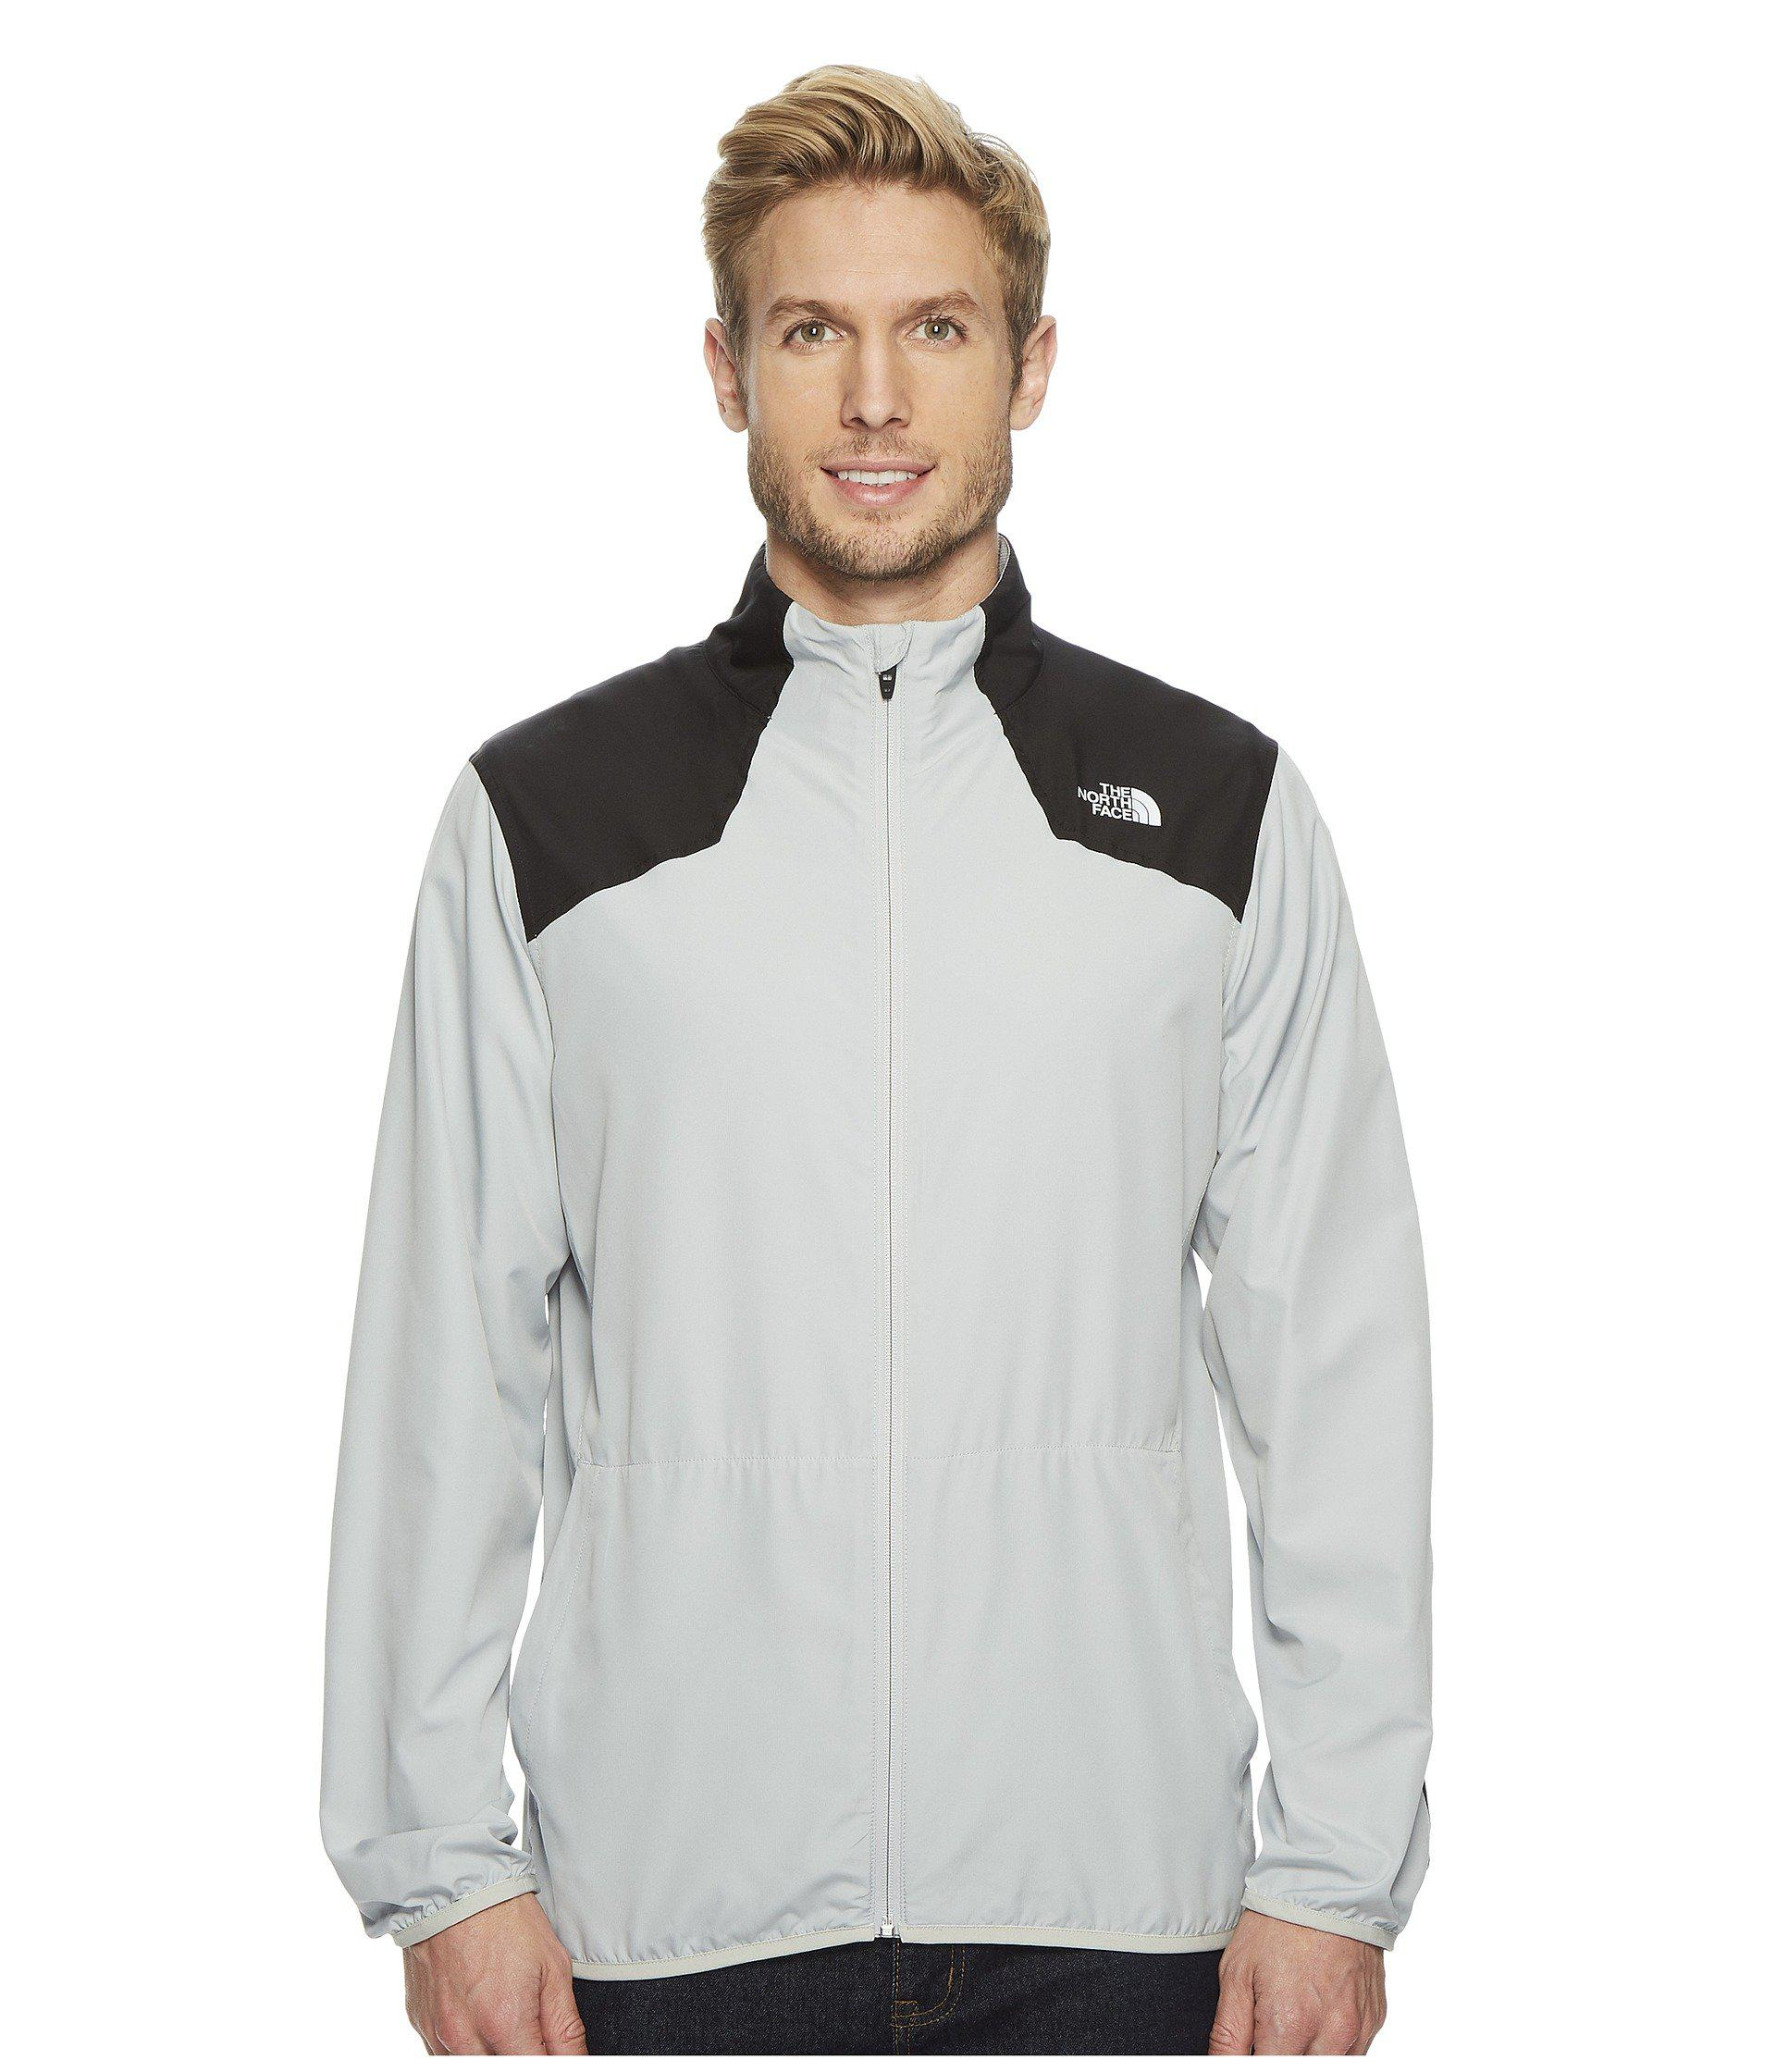 5cda010a57 Lyst - The North Face Reactor Jacket in Gray for Men